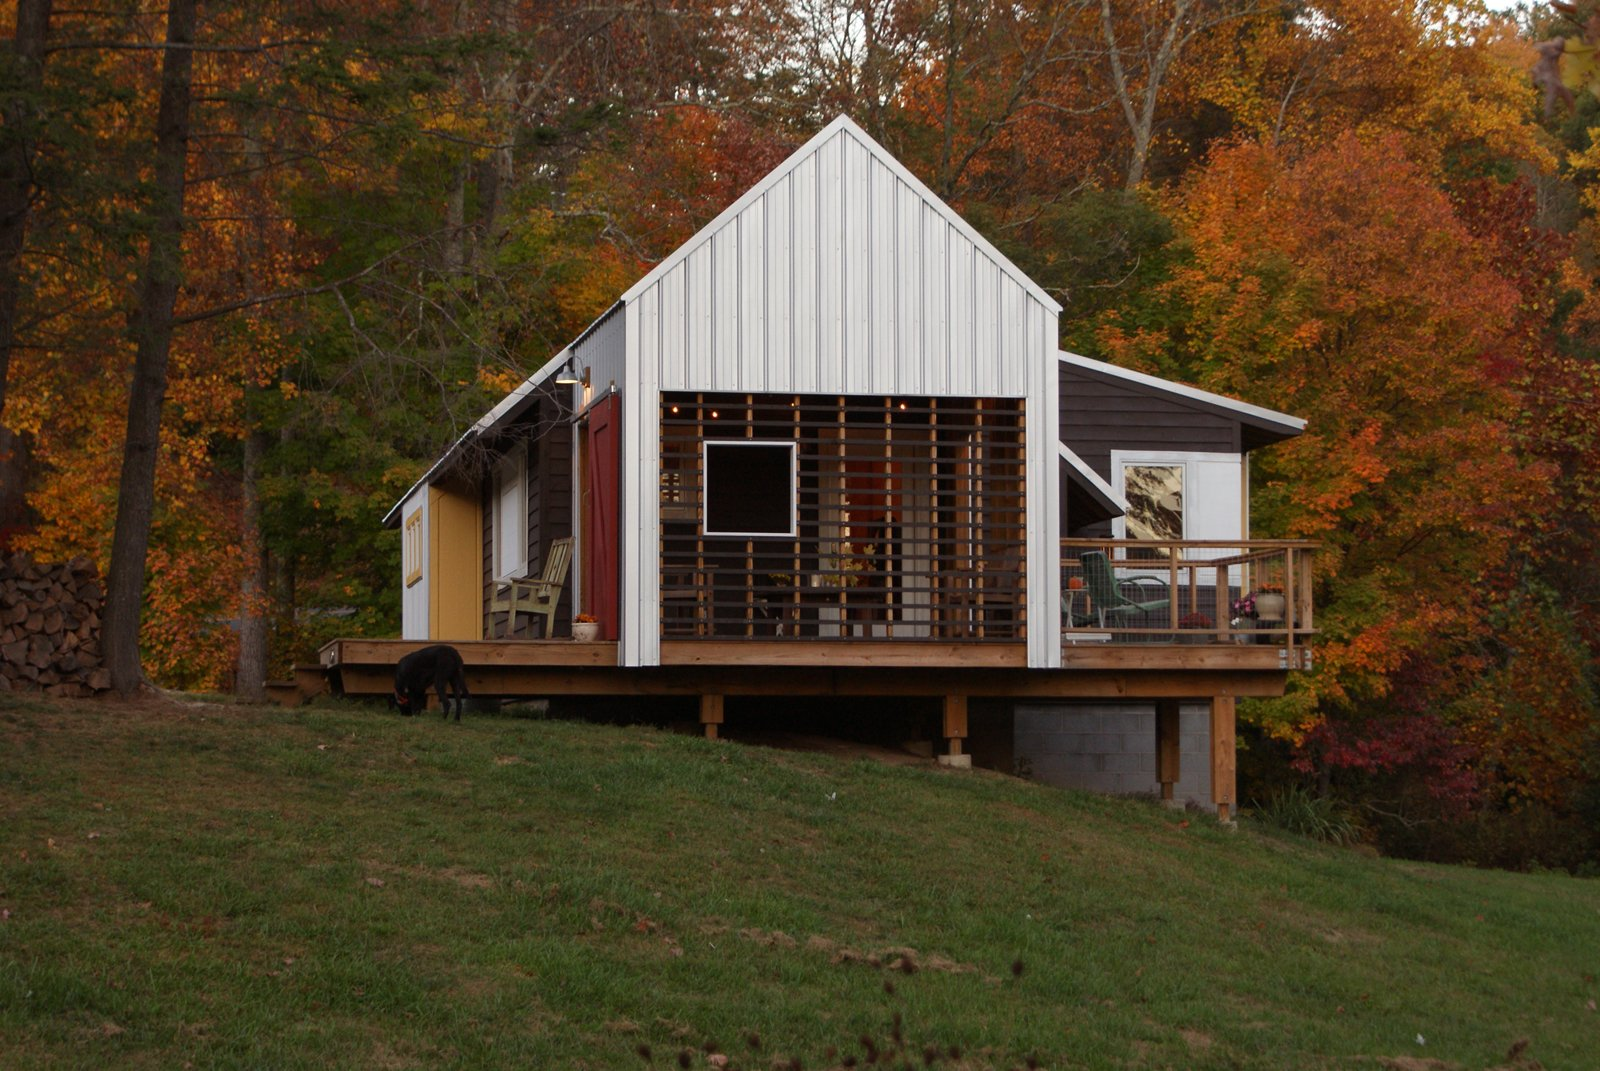 Articles about farmhouse redux on Dwell.com